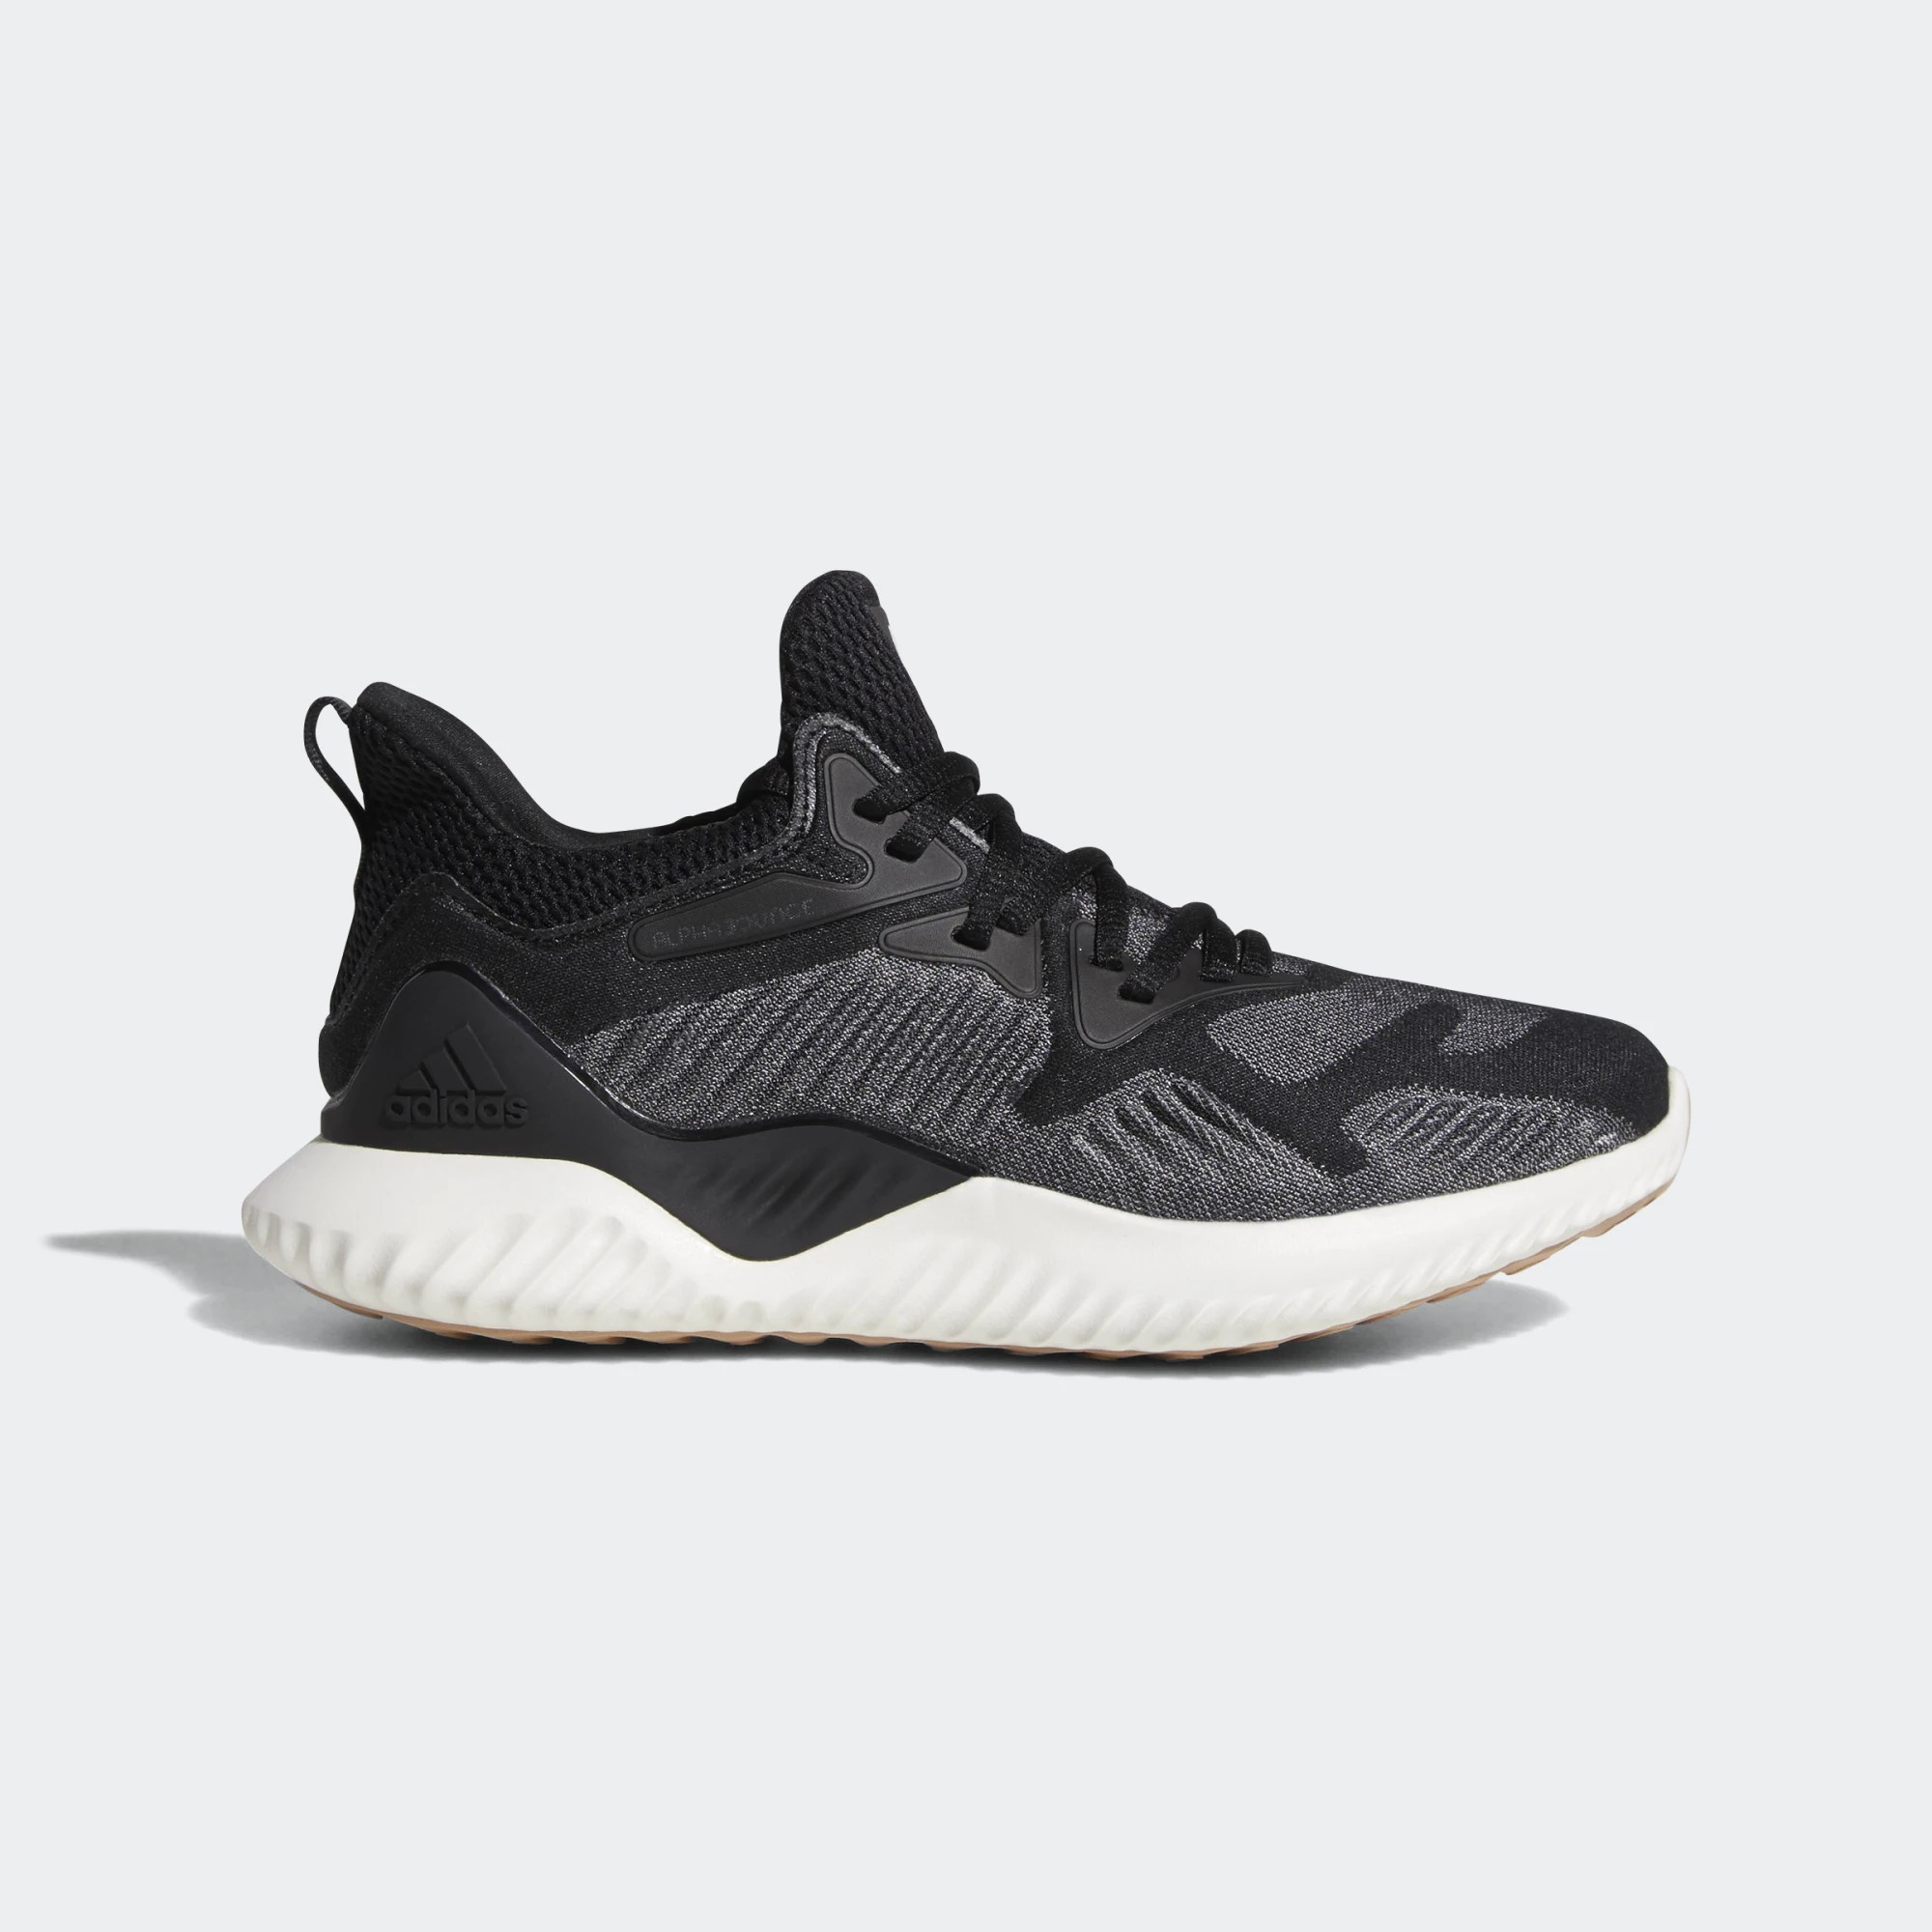 adidas Alphabounce Beyond W Black White CG5581